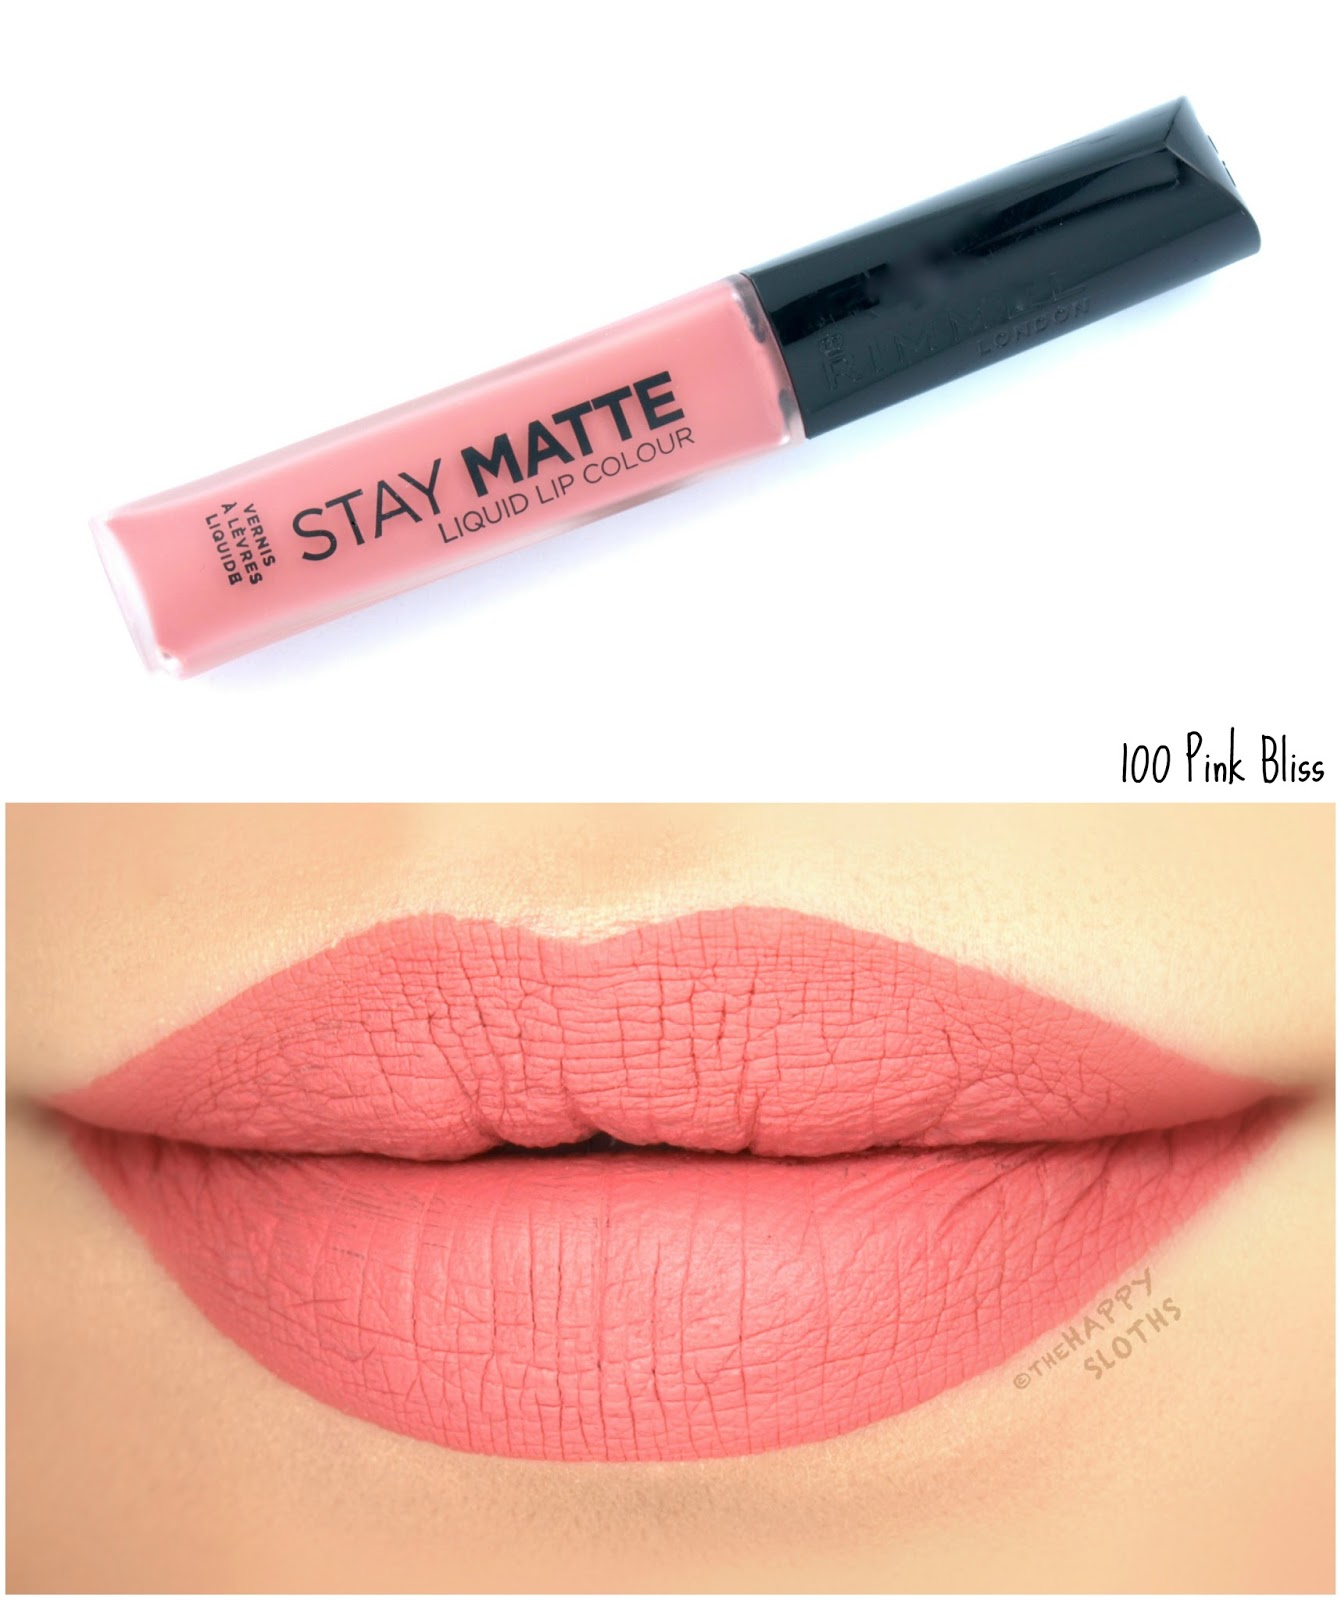 Rimmel London Stay Matte Liquid Lip Colour | 100 Pink Bliss: Review and Swatches